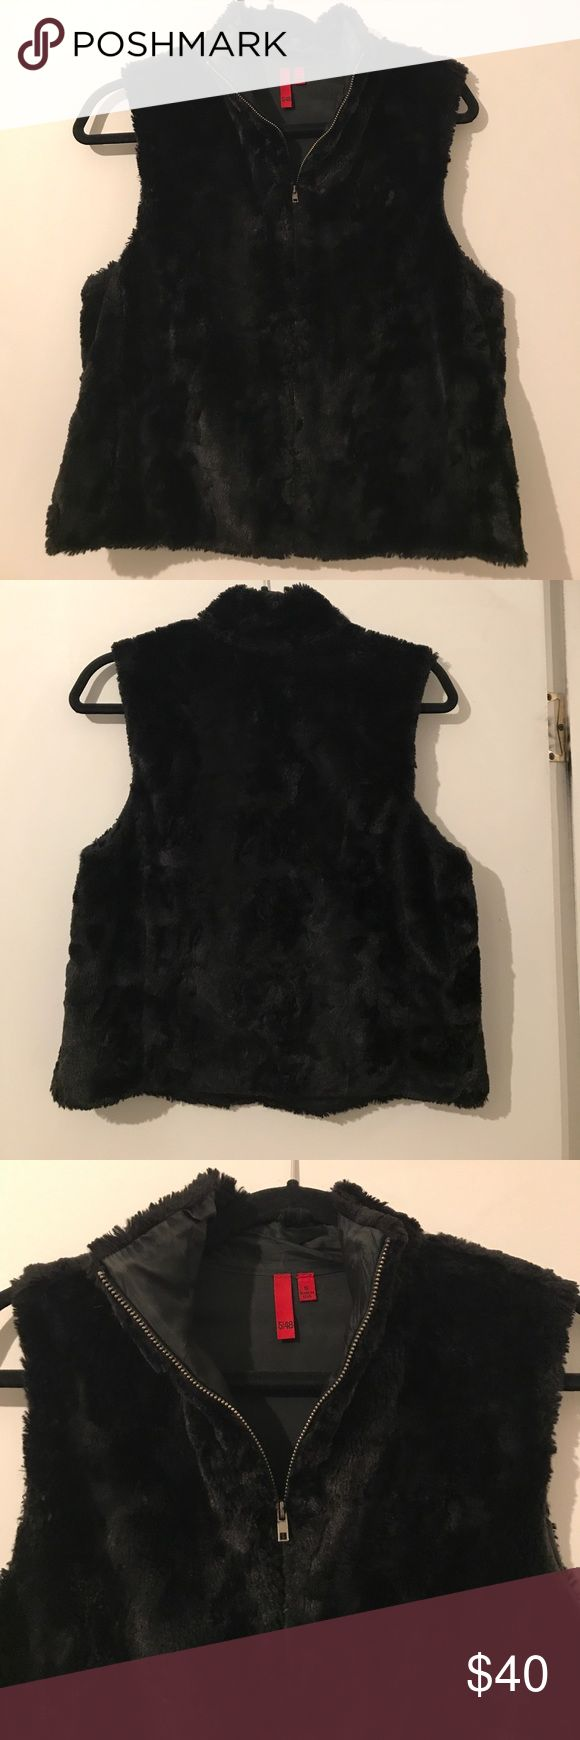 5/48 Saks off 5th Faux Fur Vest Faux Fur black vest lined. Perfect condition worn once. From Saks Off 5th Jackets & Coats Vests